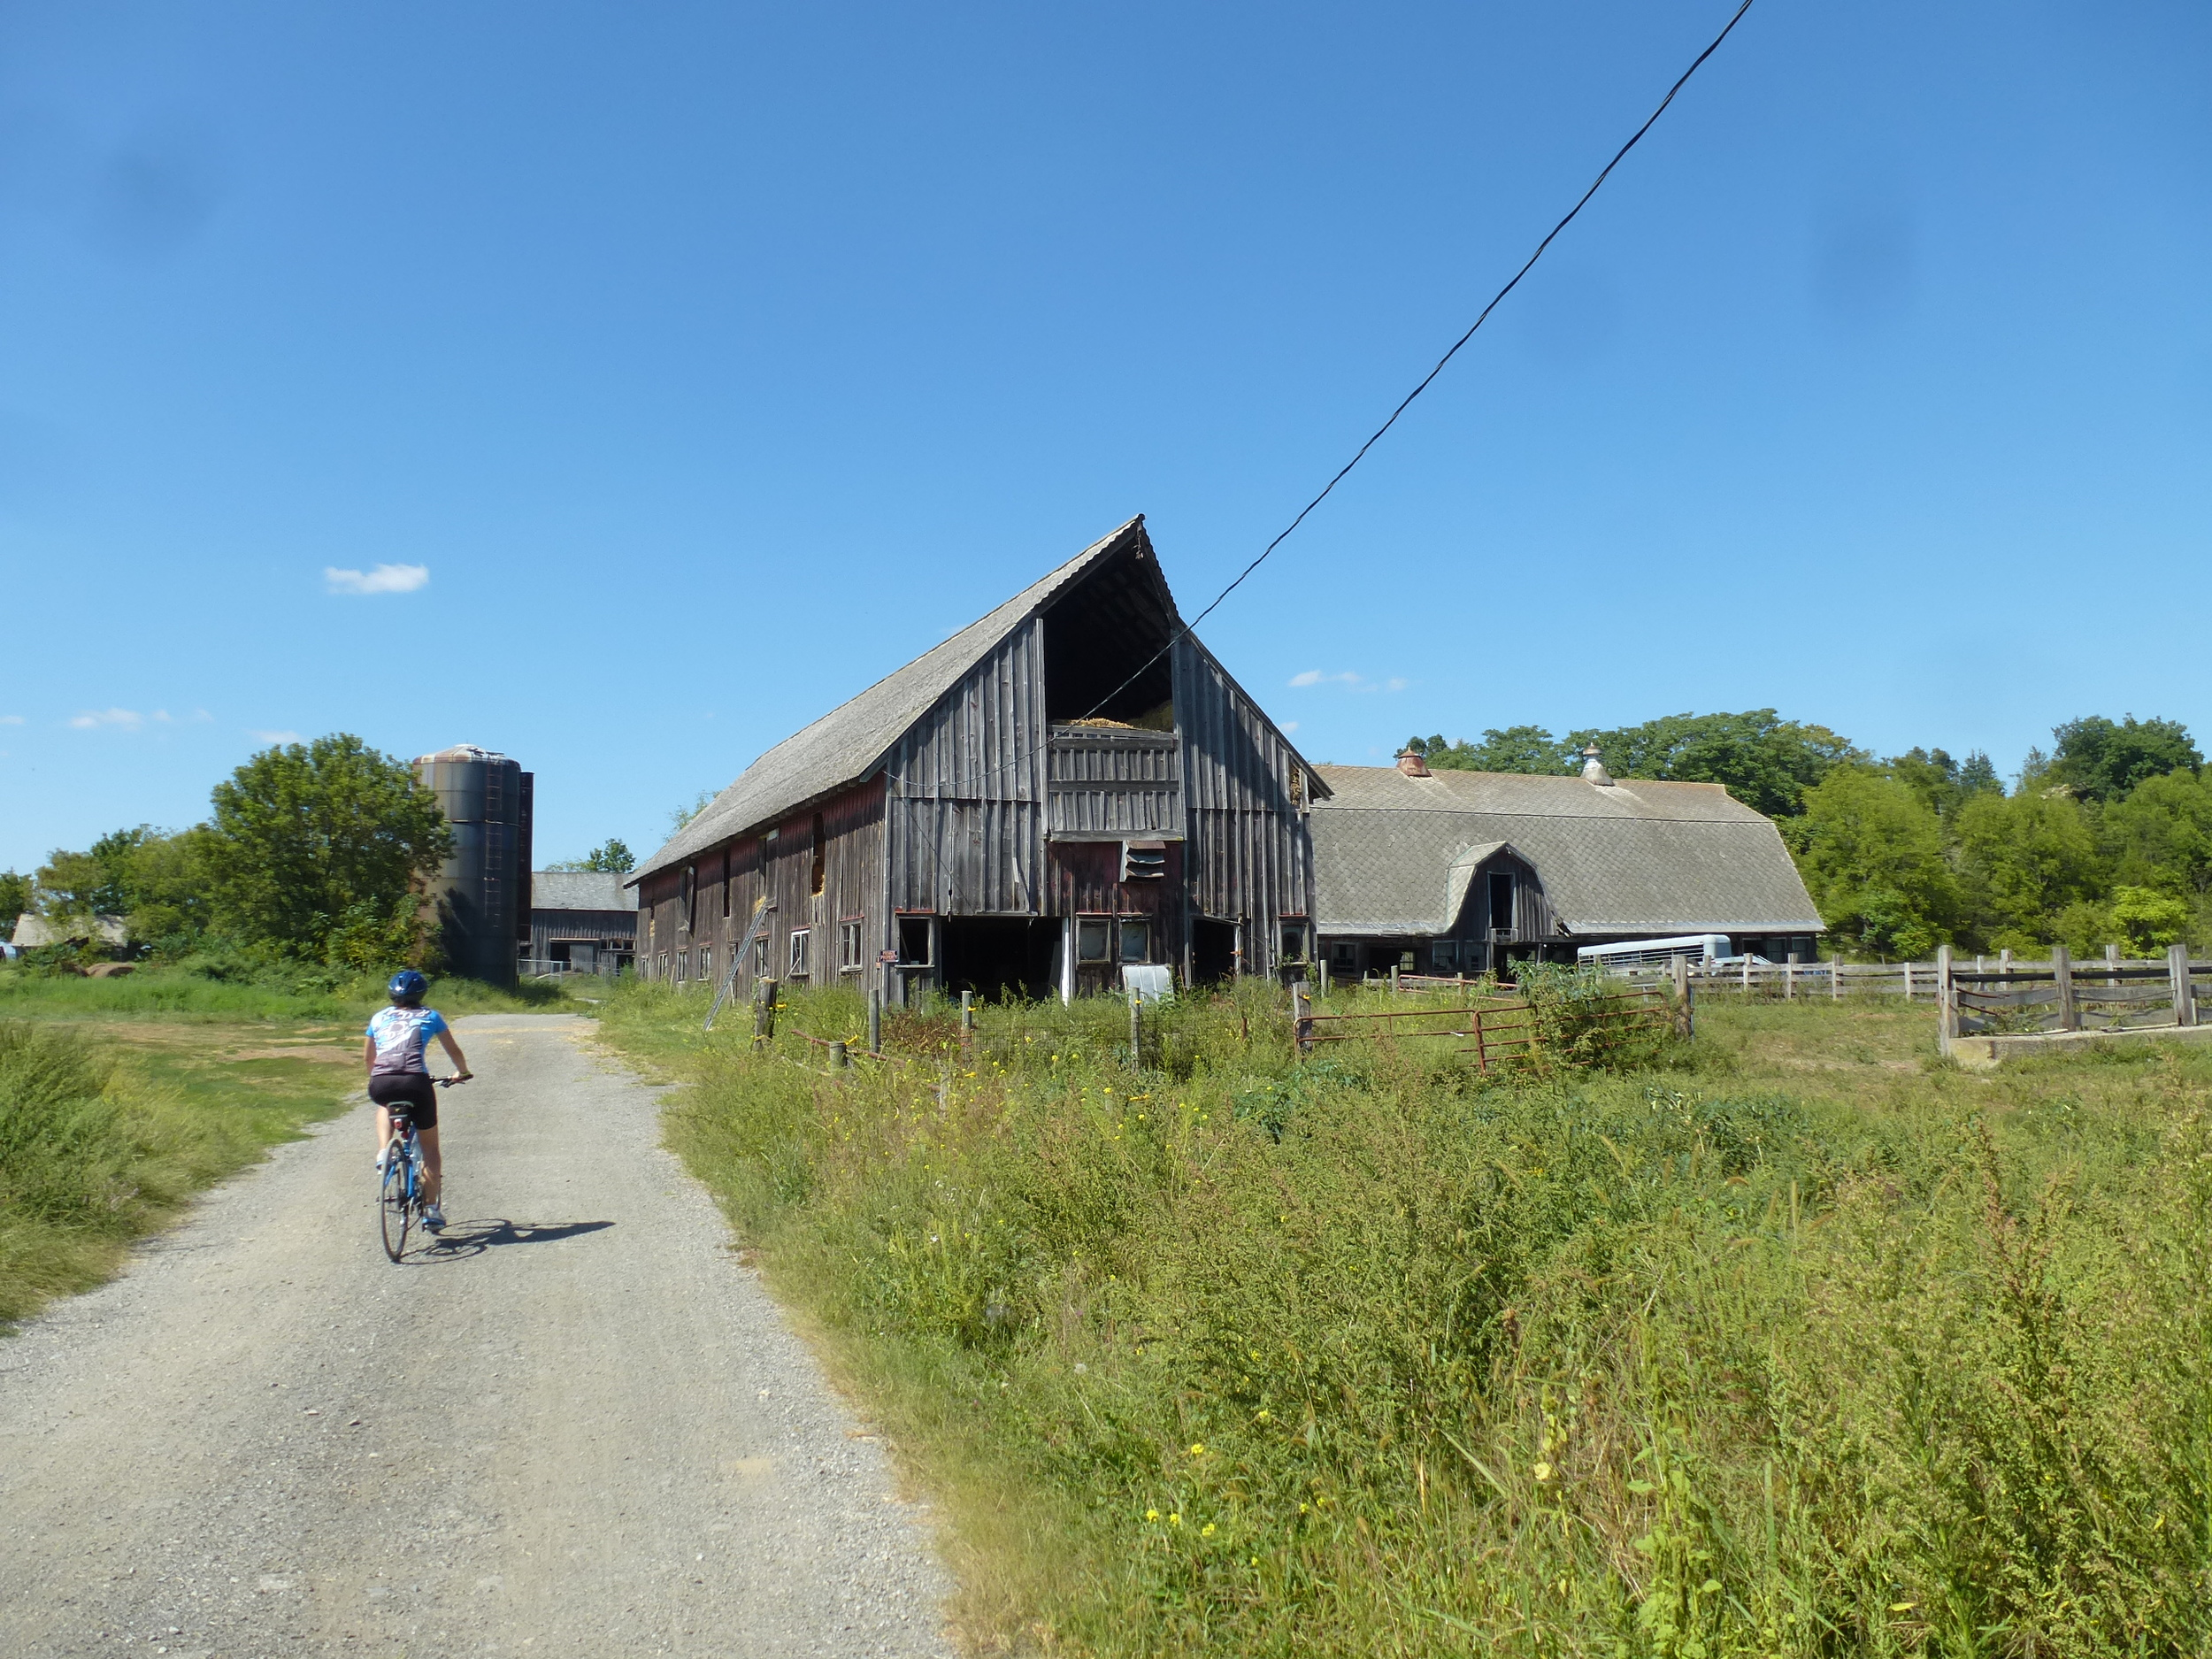 Leaving Ideal Farm, the last stop on our ride